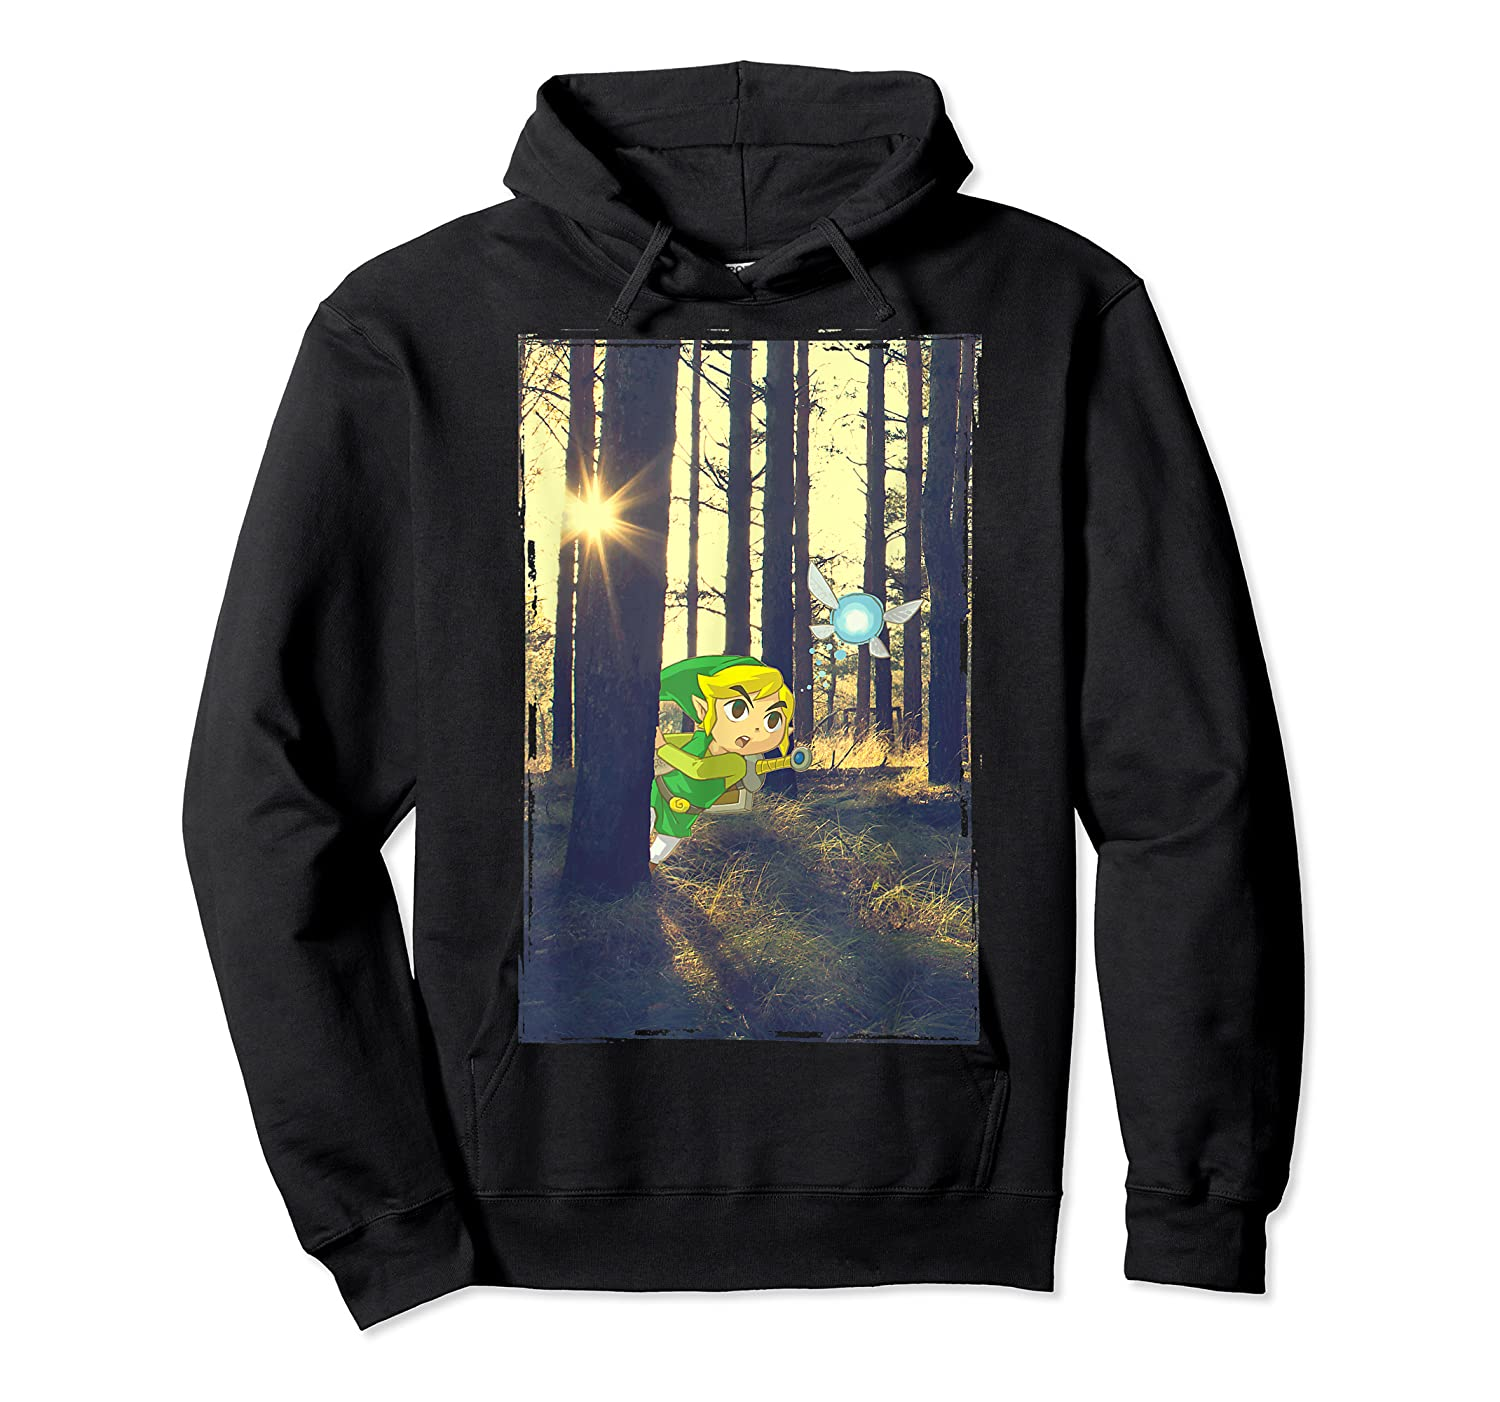 Nintendo Zelda Link And Navi Photo Real Forest Scene Shirts Unisex Pullover Hoodie